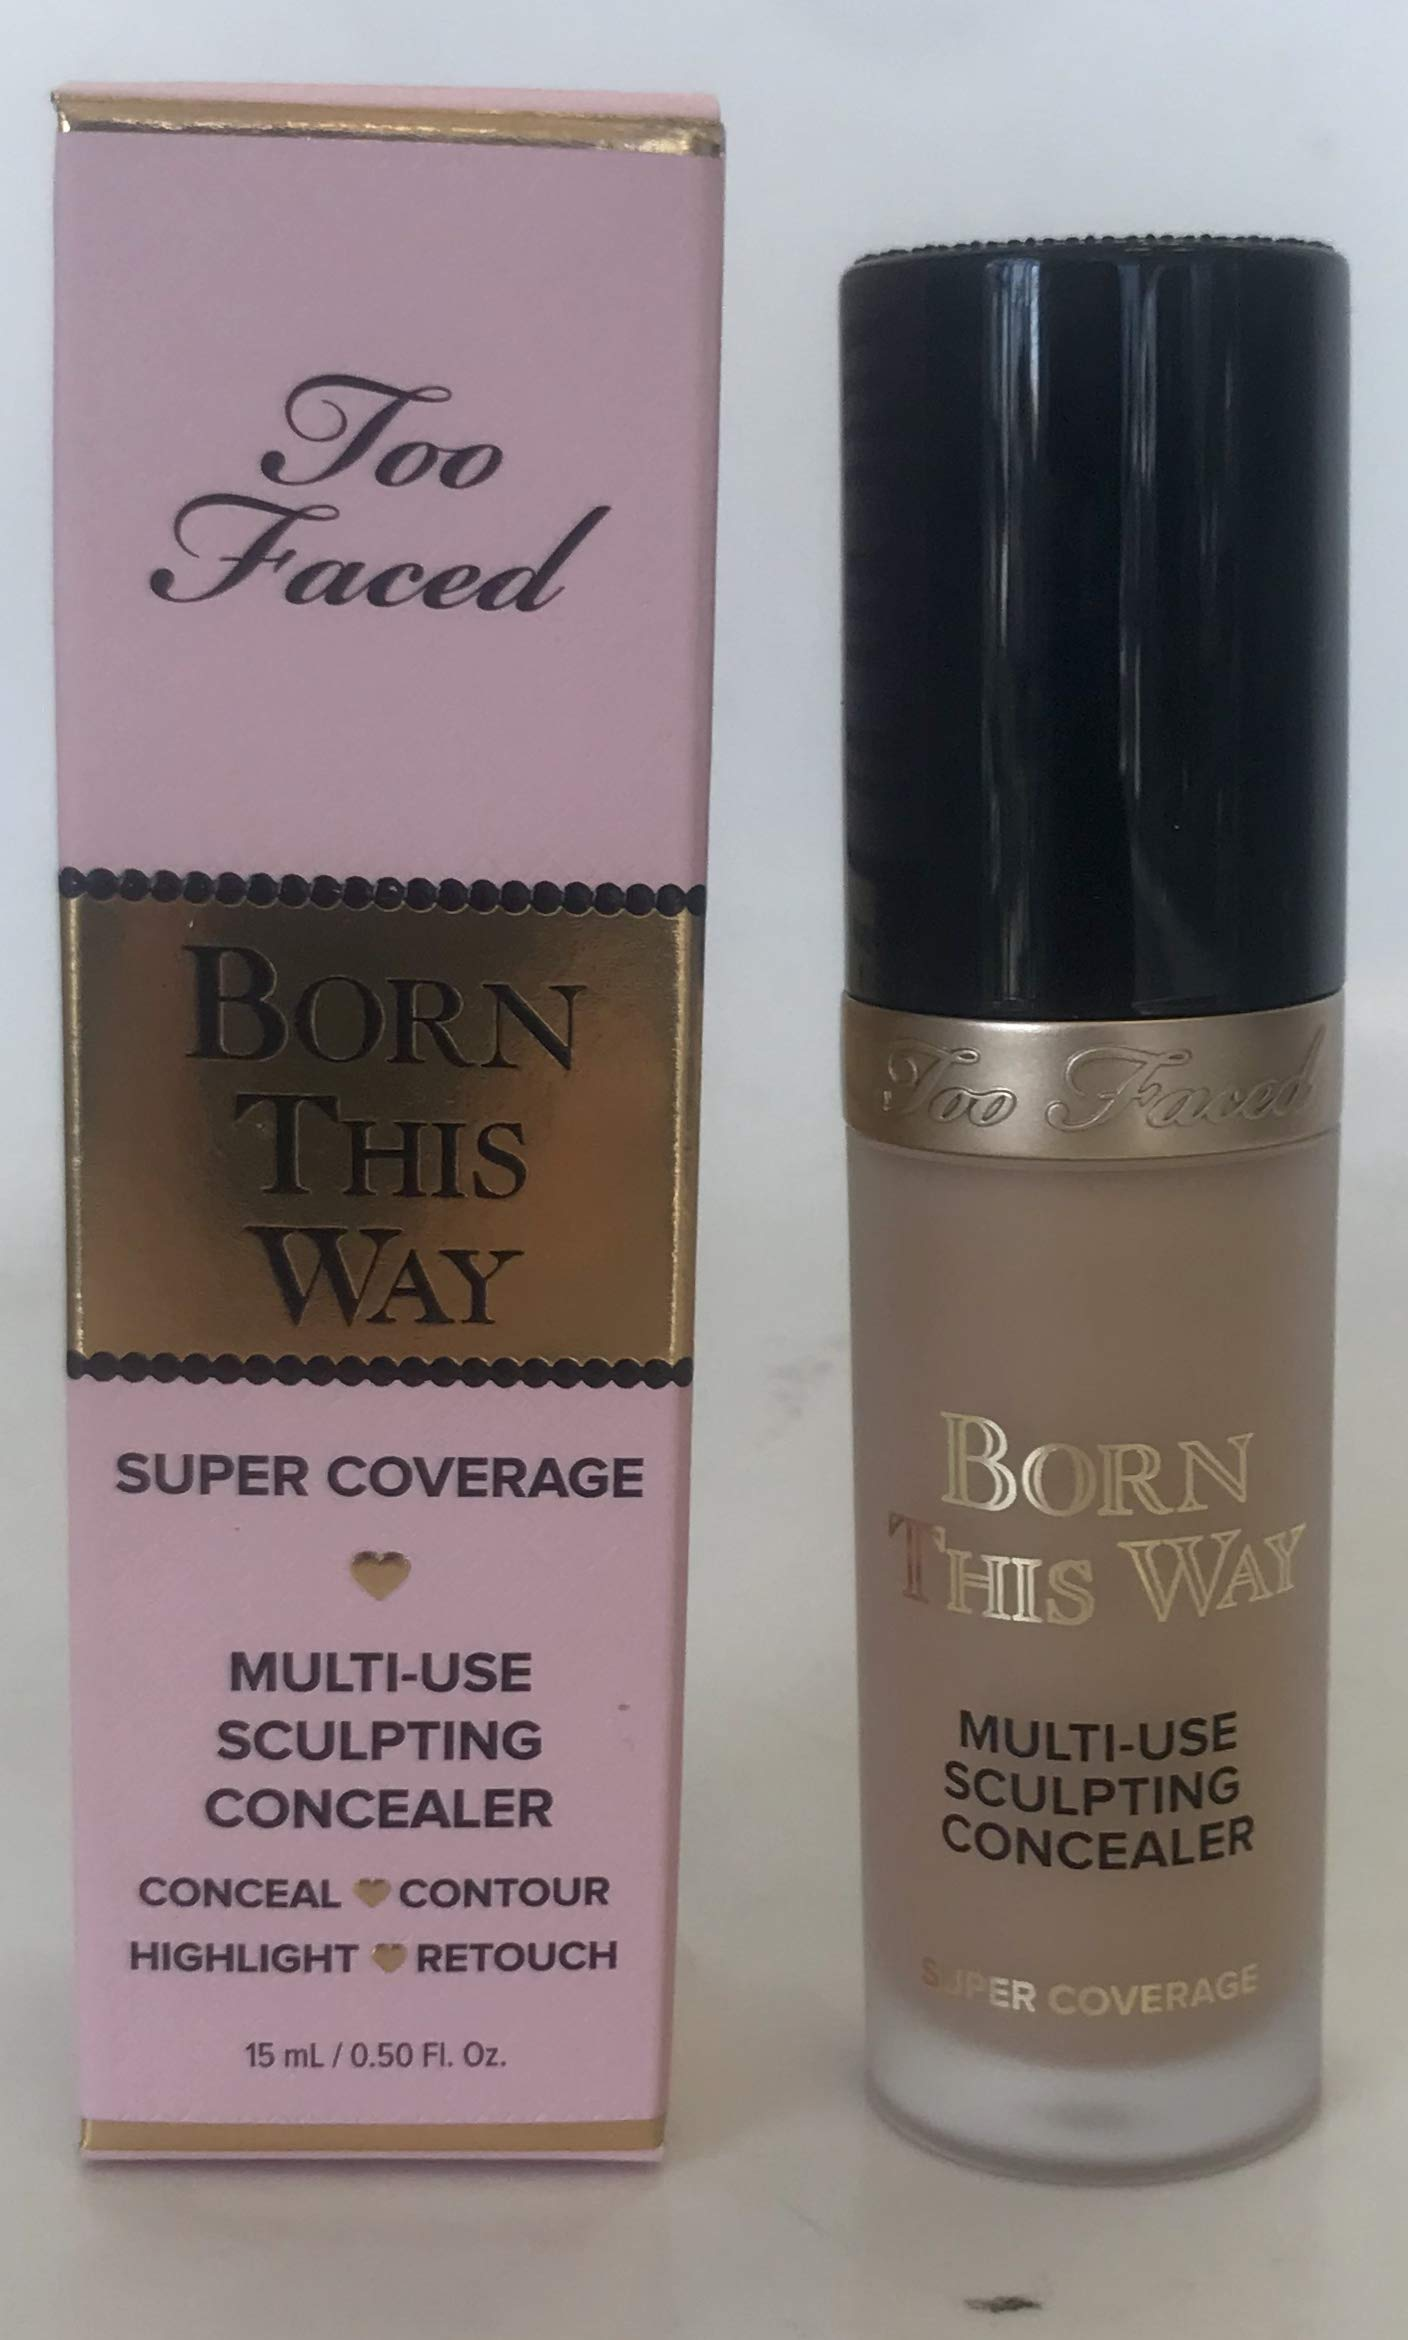 Born this Way Super Coverage Multi-Use Sculpting Concealer Natural Beige